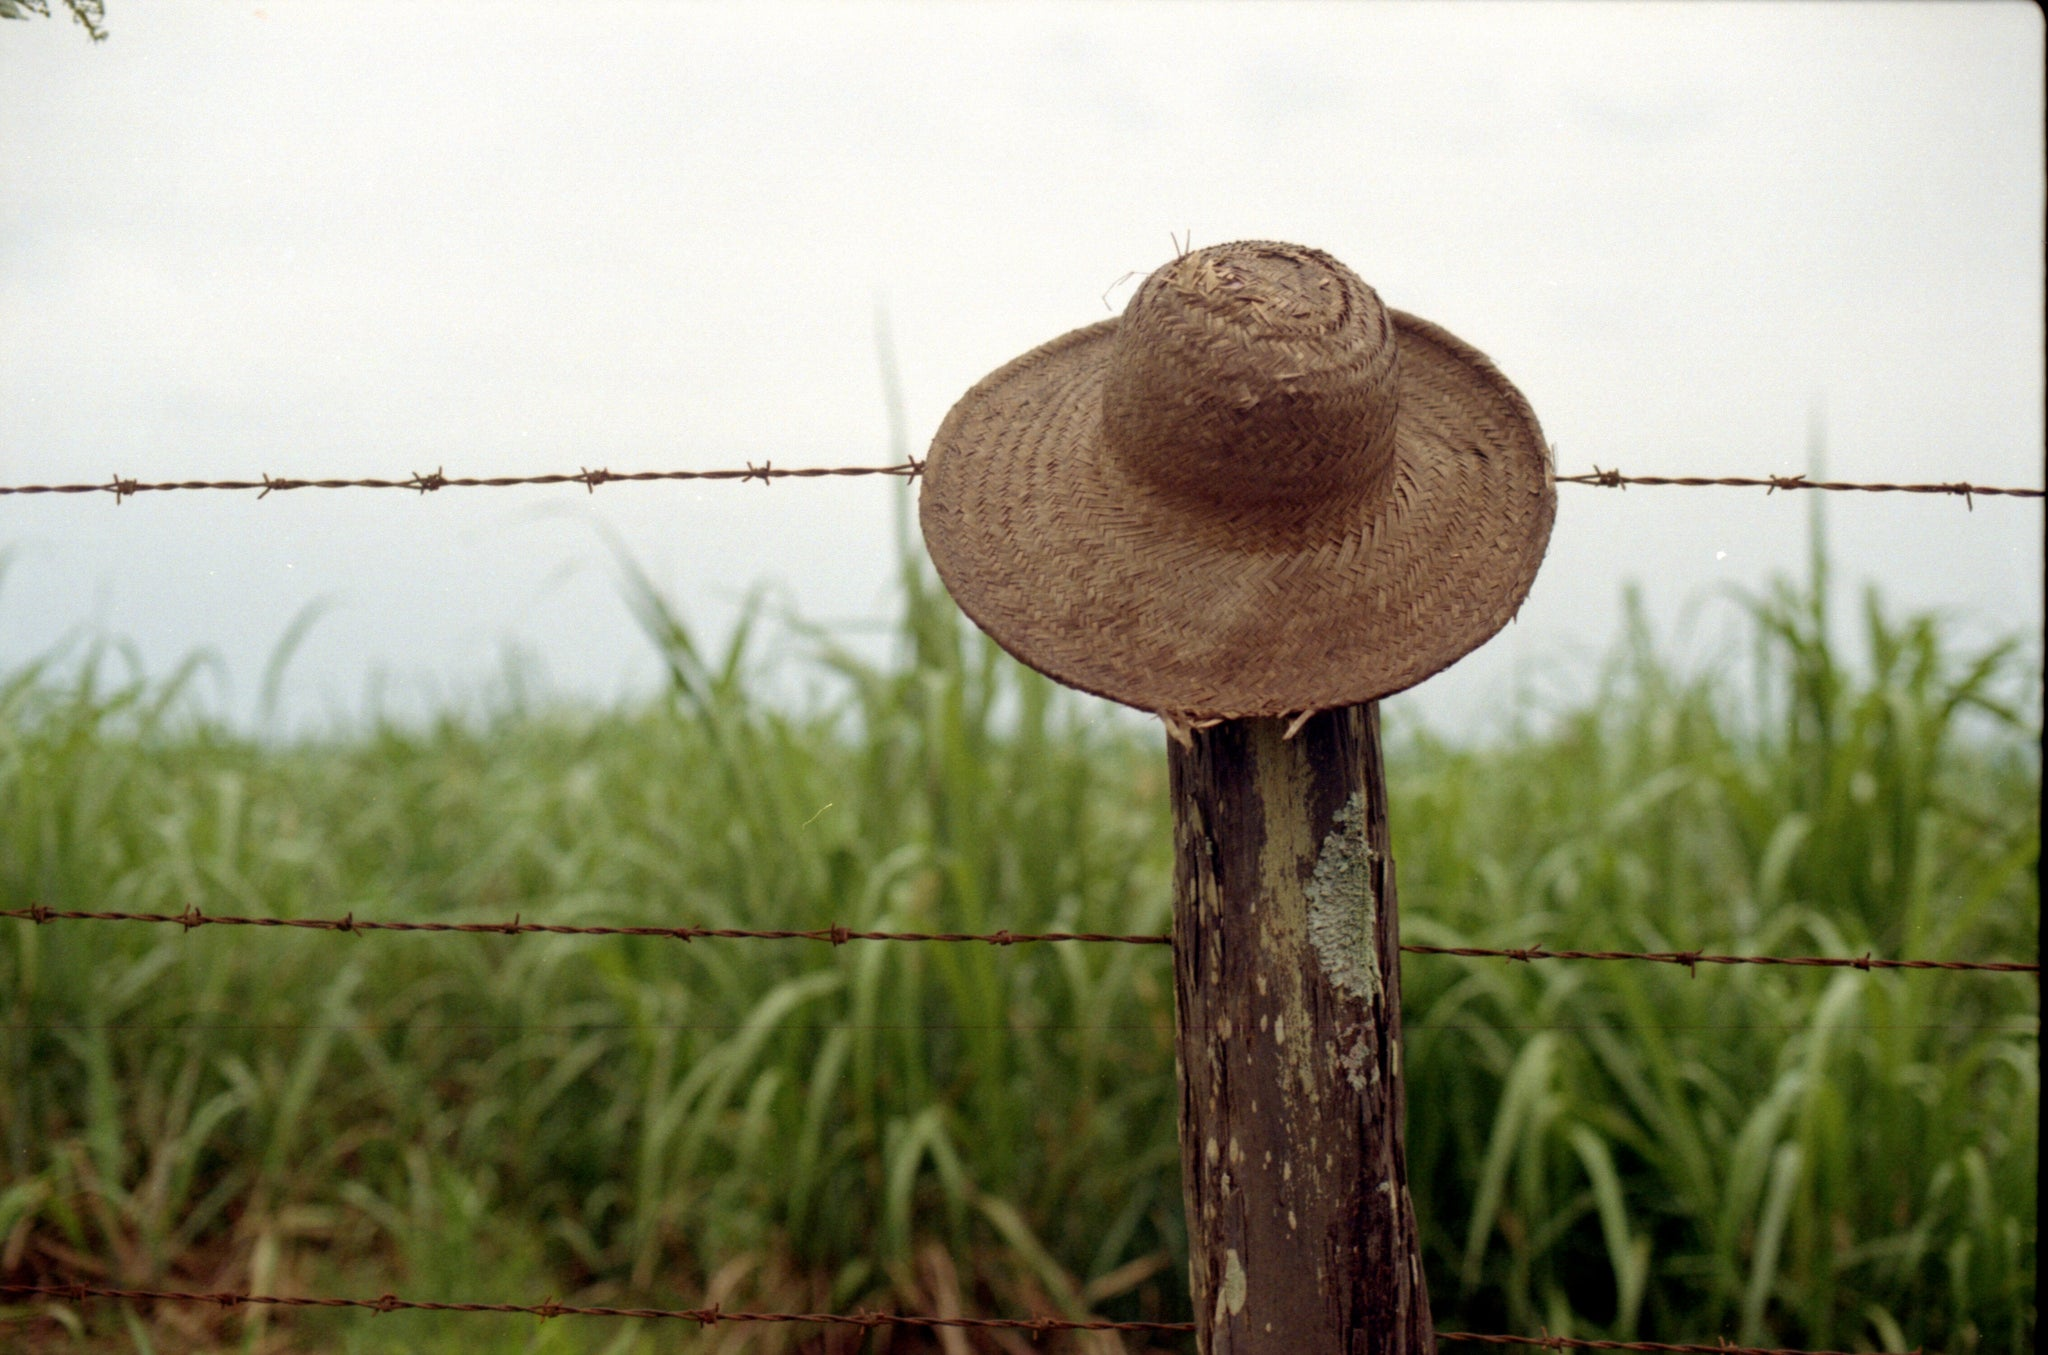 sample shot of hat on kodak pro image 100 35mm film available to buy